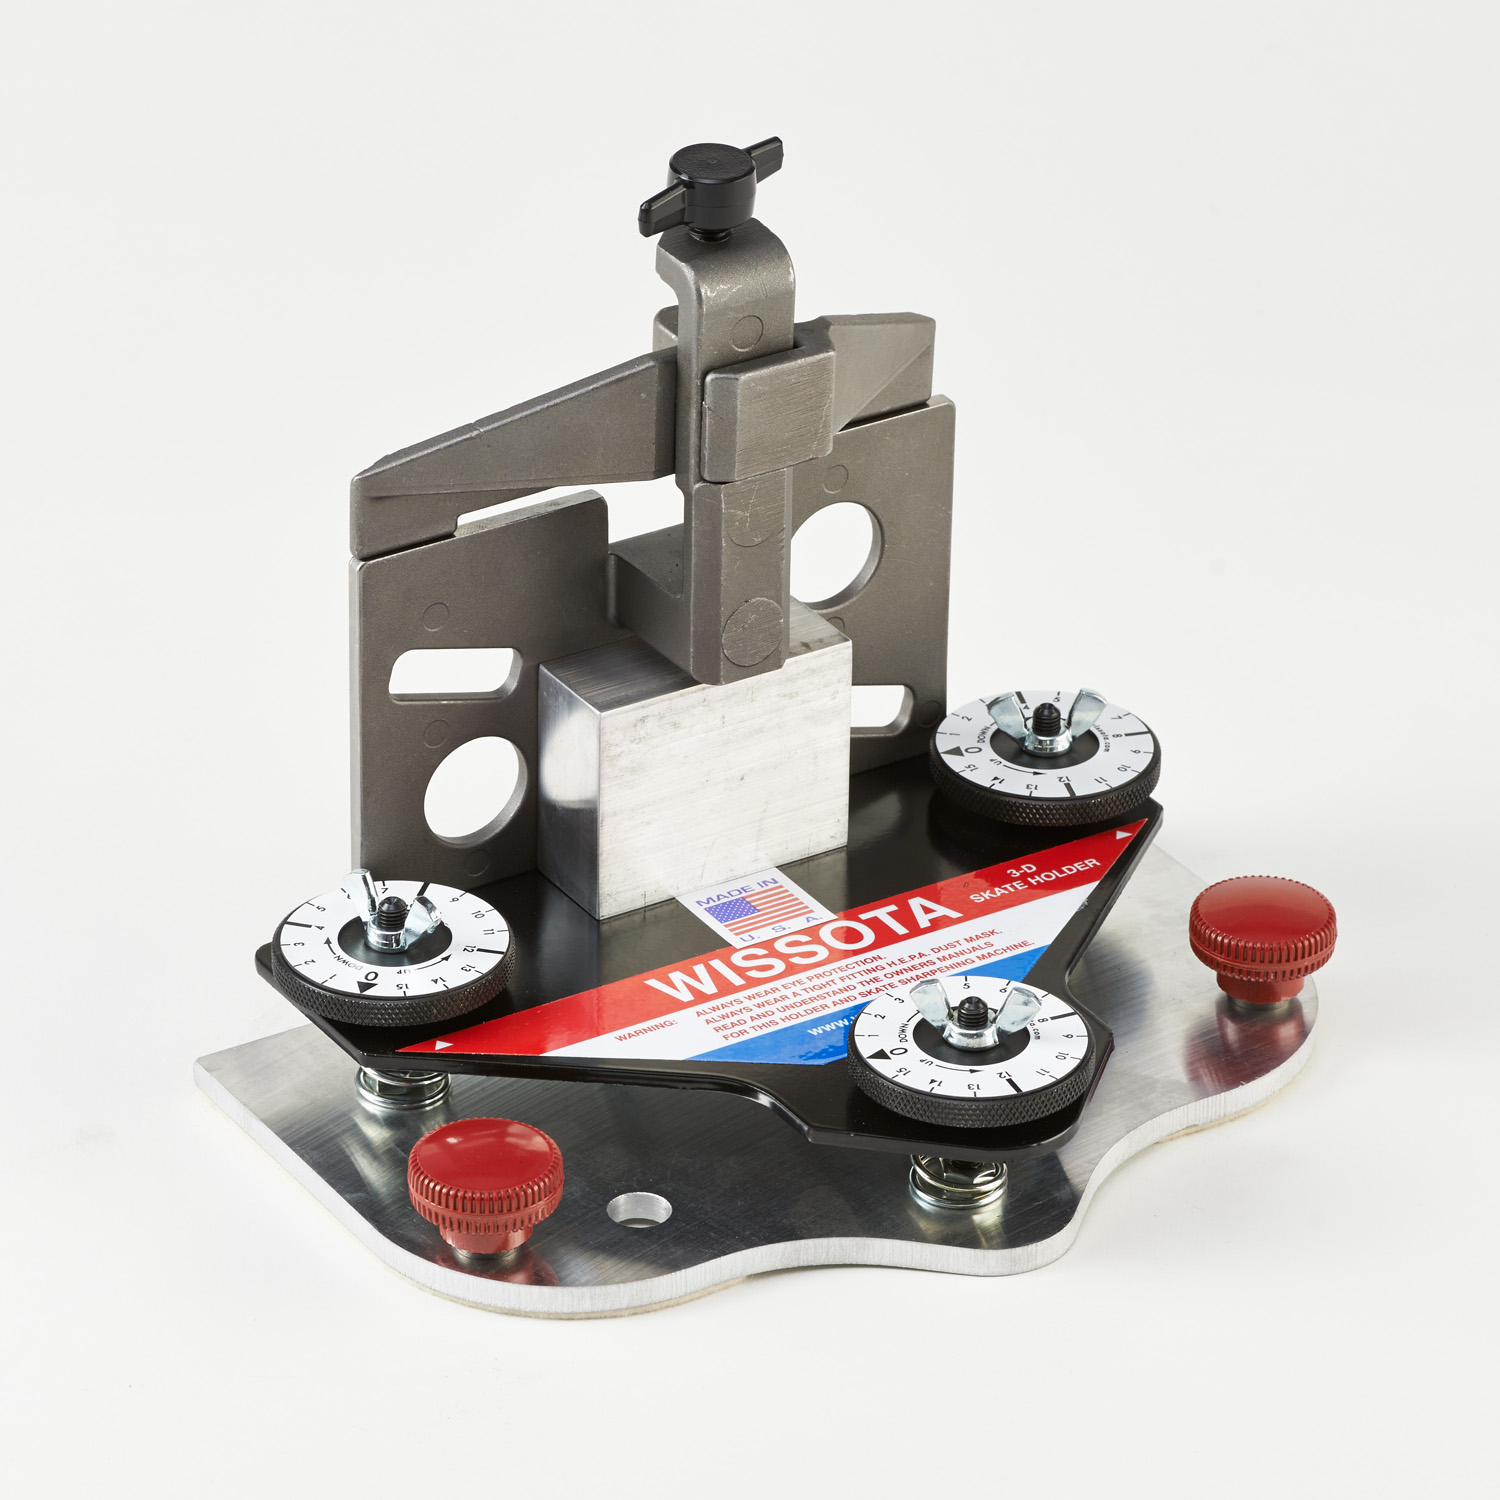 3-D Three Dial Universal Skate Holder